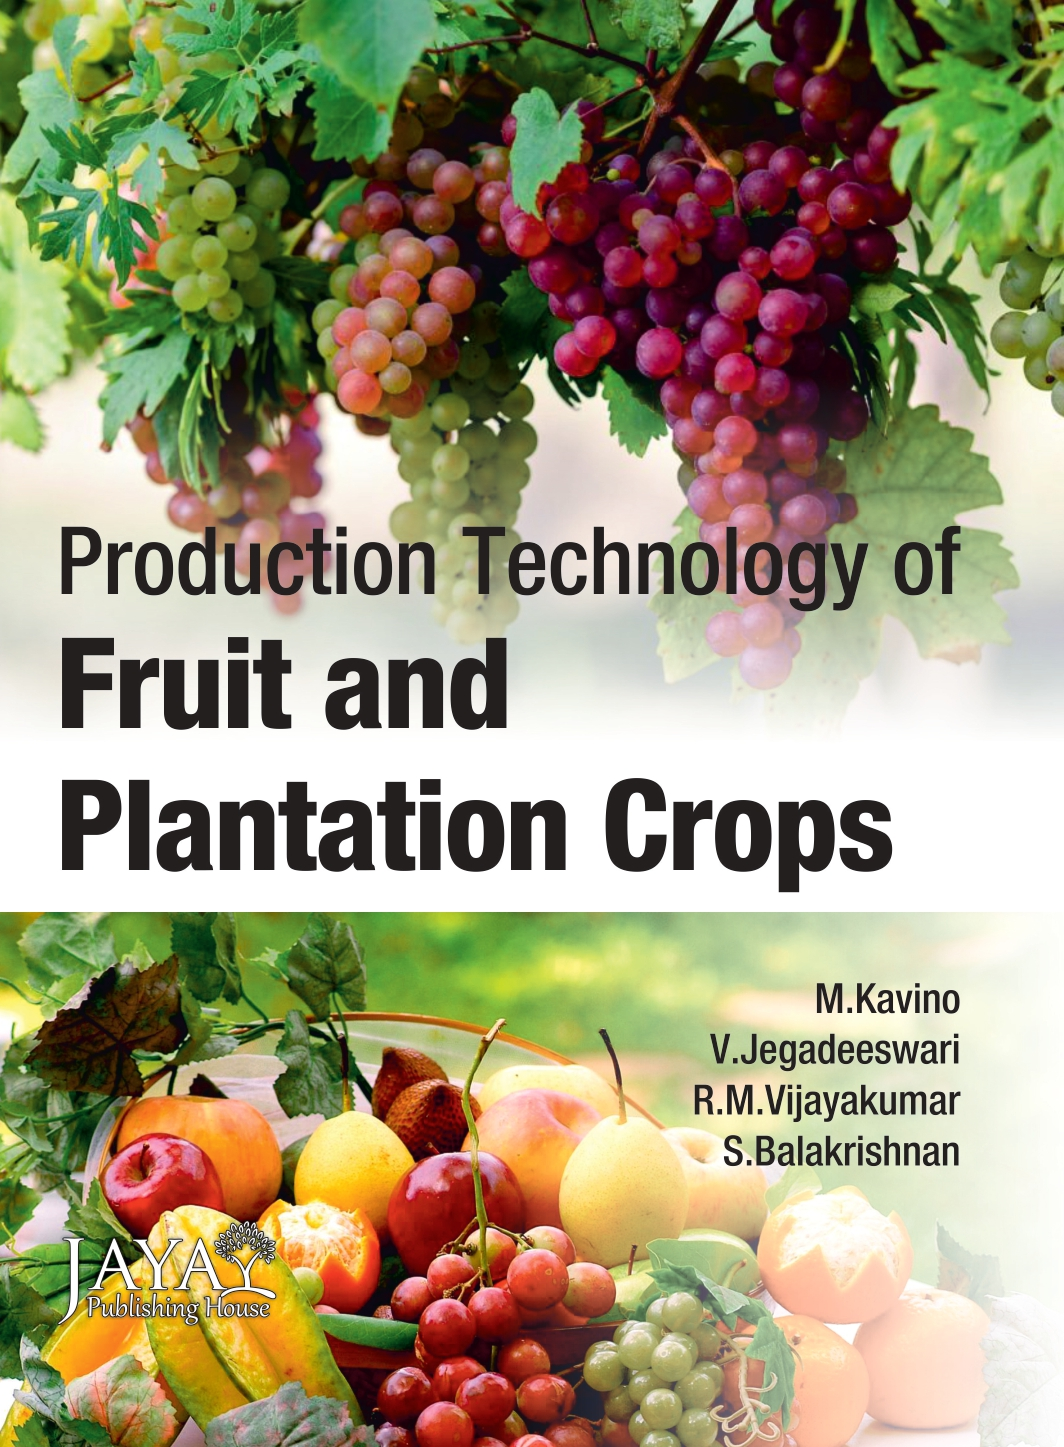 Production Technology of Fruits and Plantation Crops